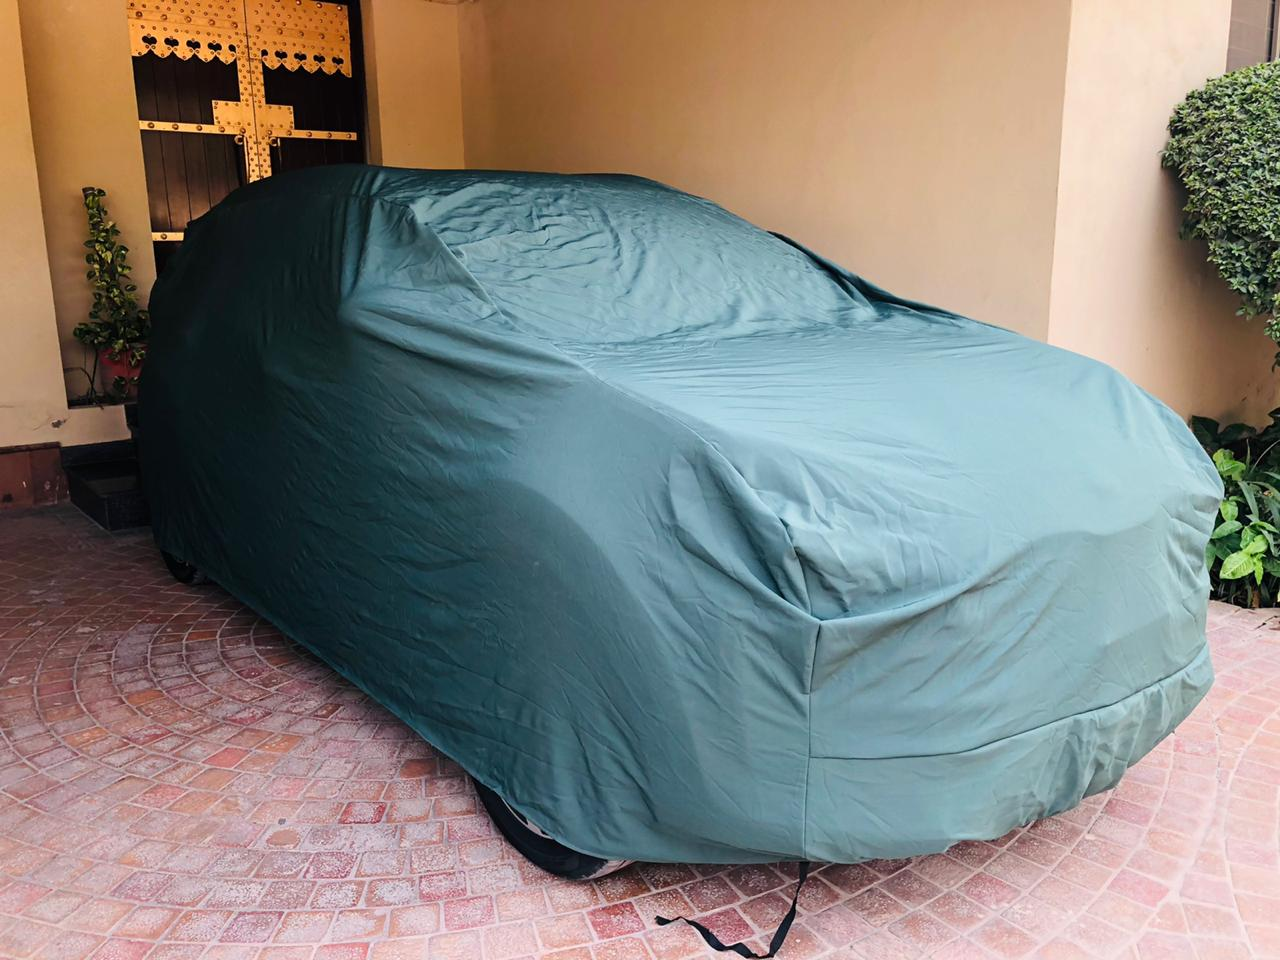 Daihatsu Cuore Microfiber Car Top Cover - Model 2000-2012